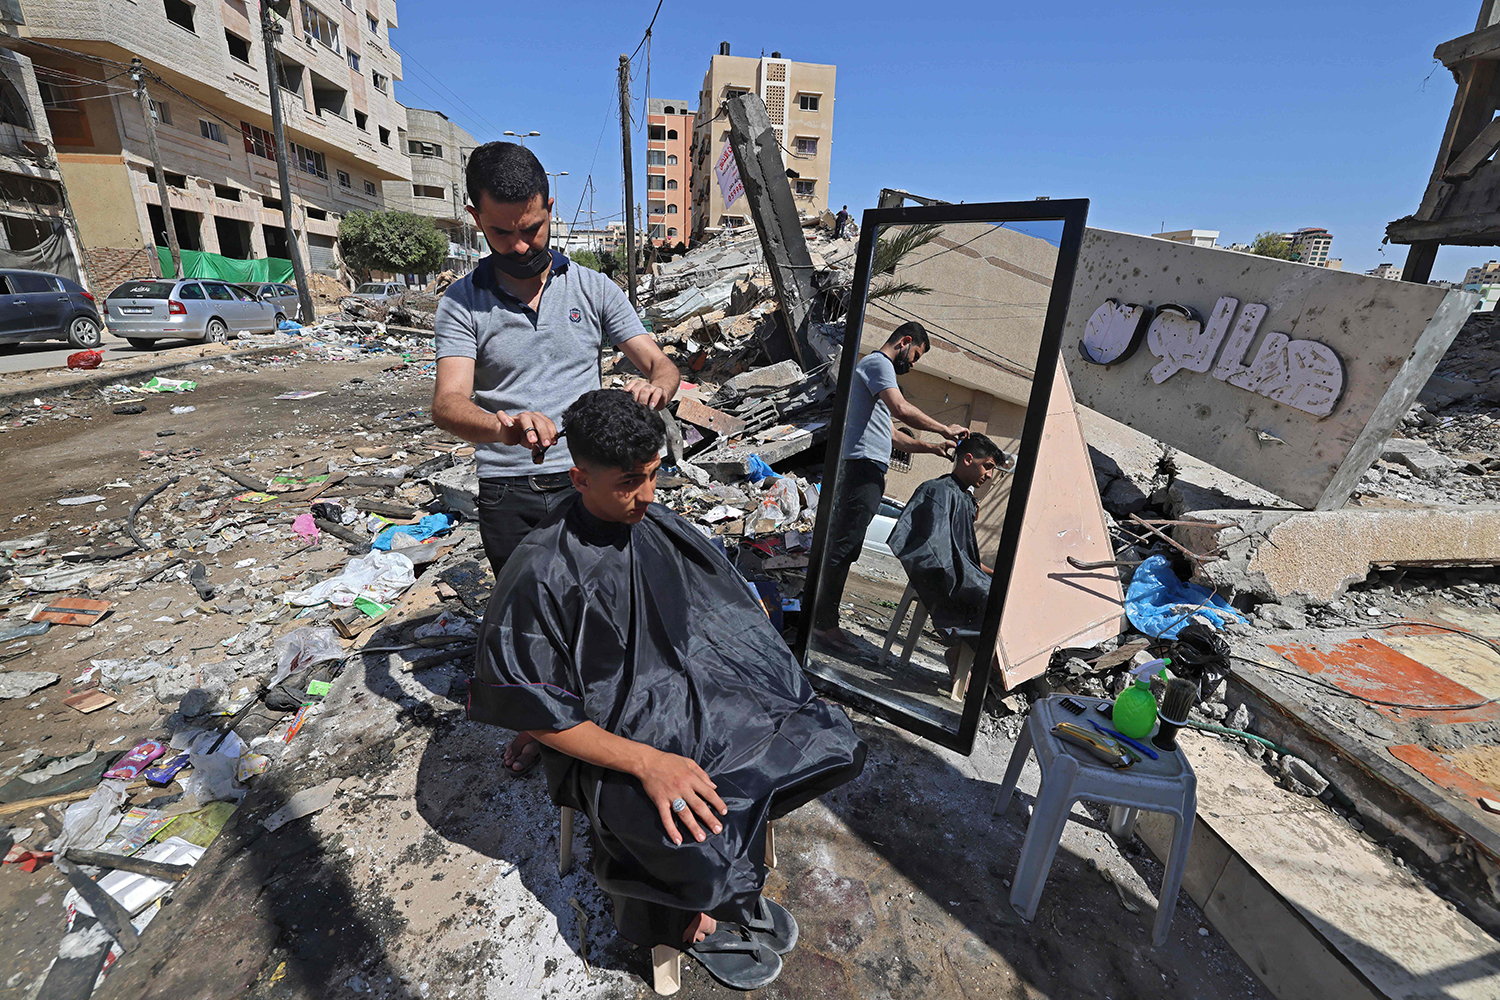 A Palestinian barber amid rubble